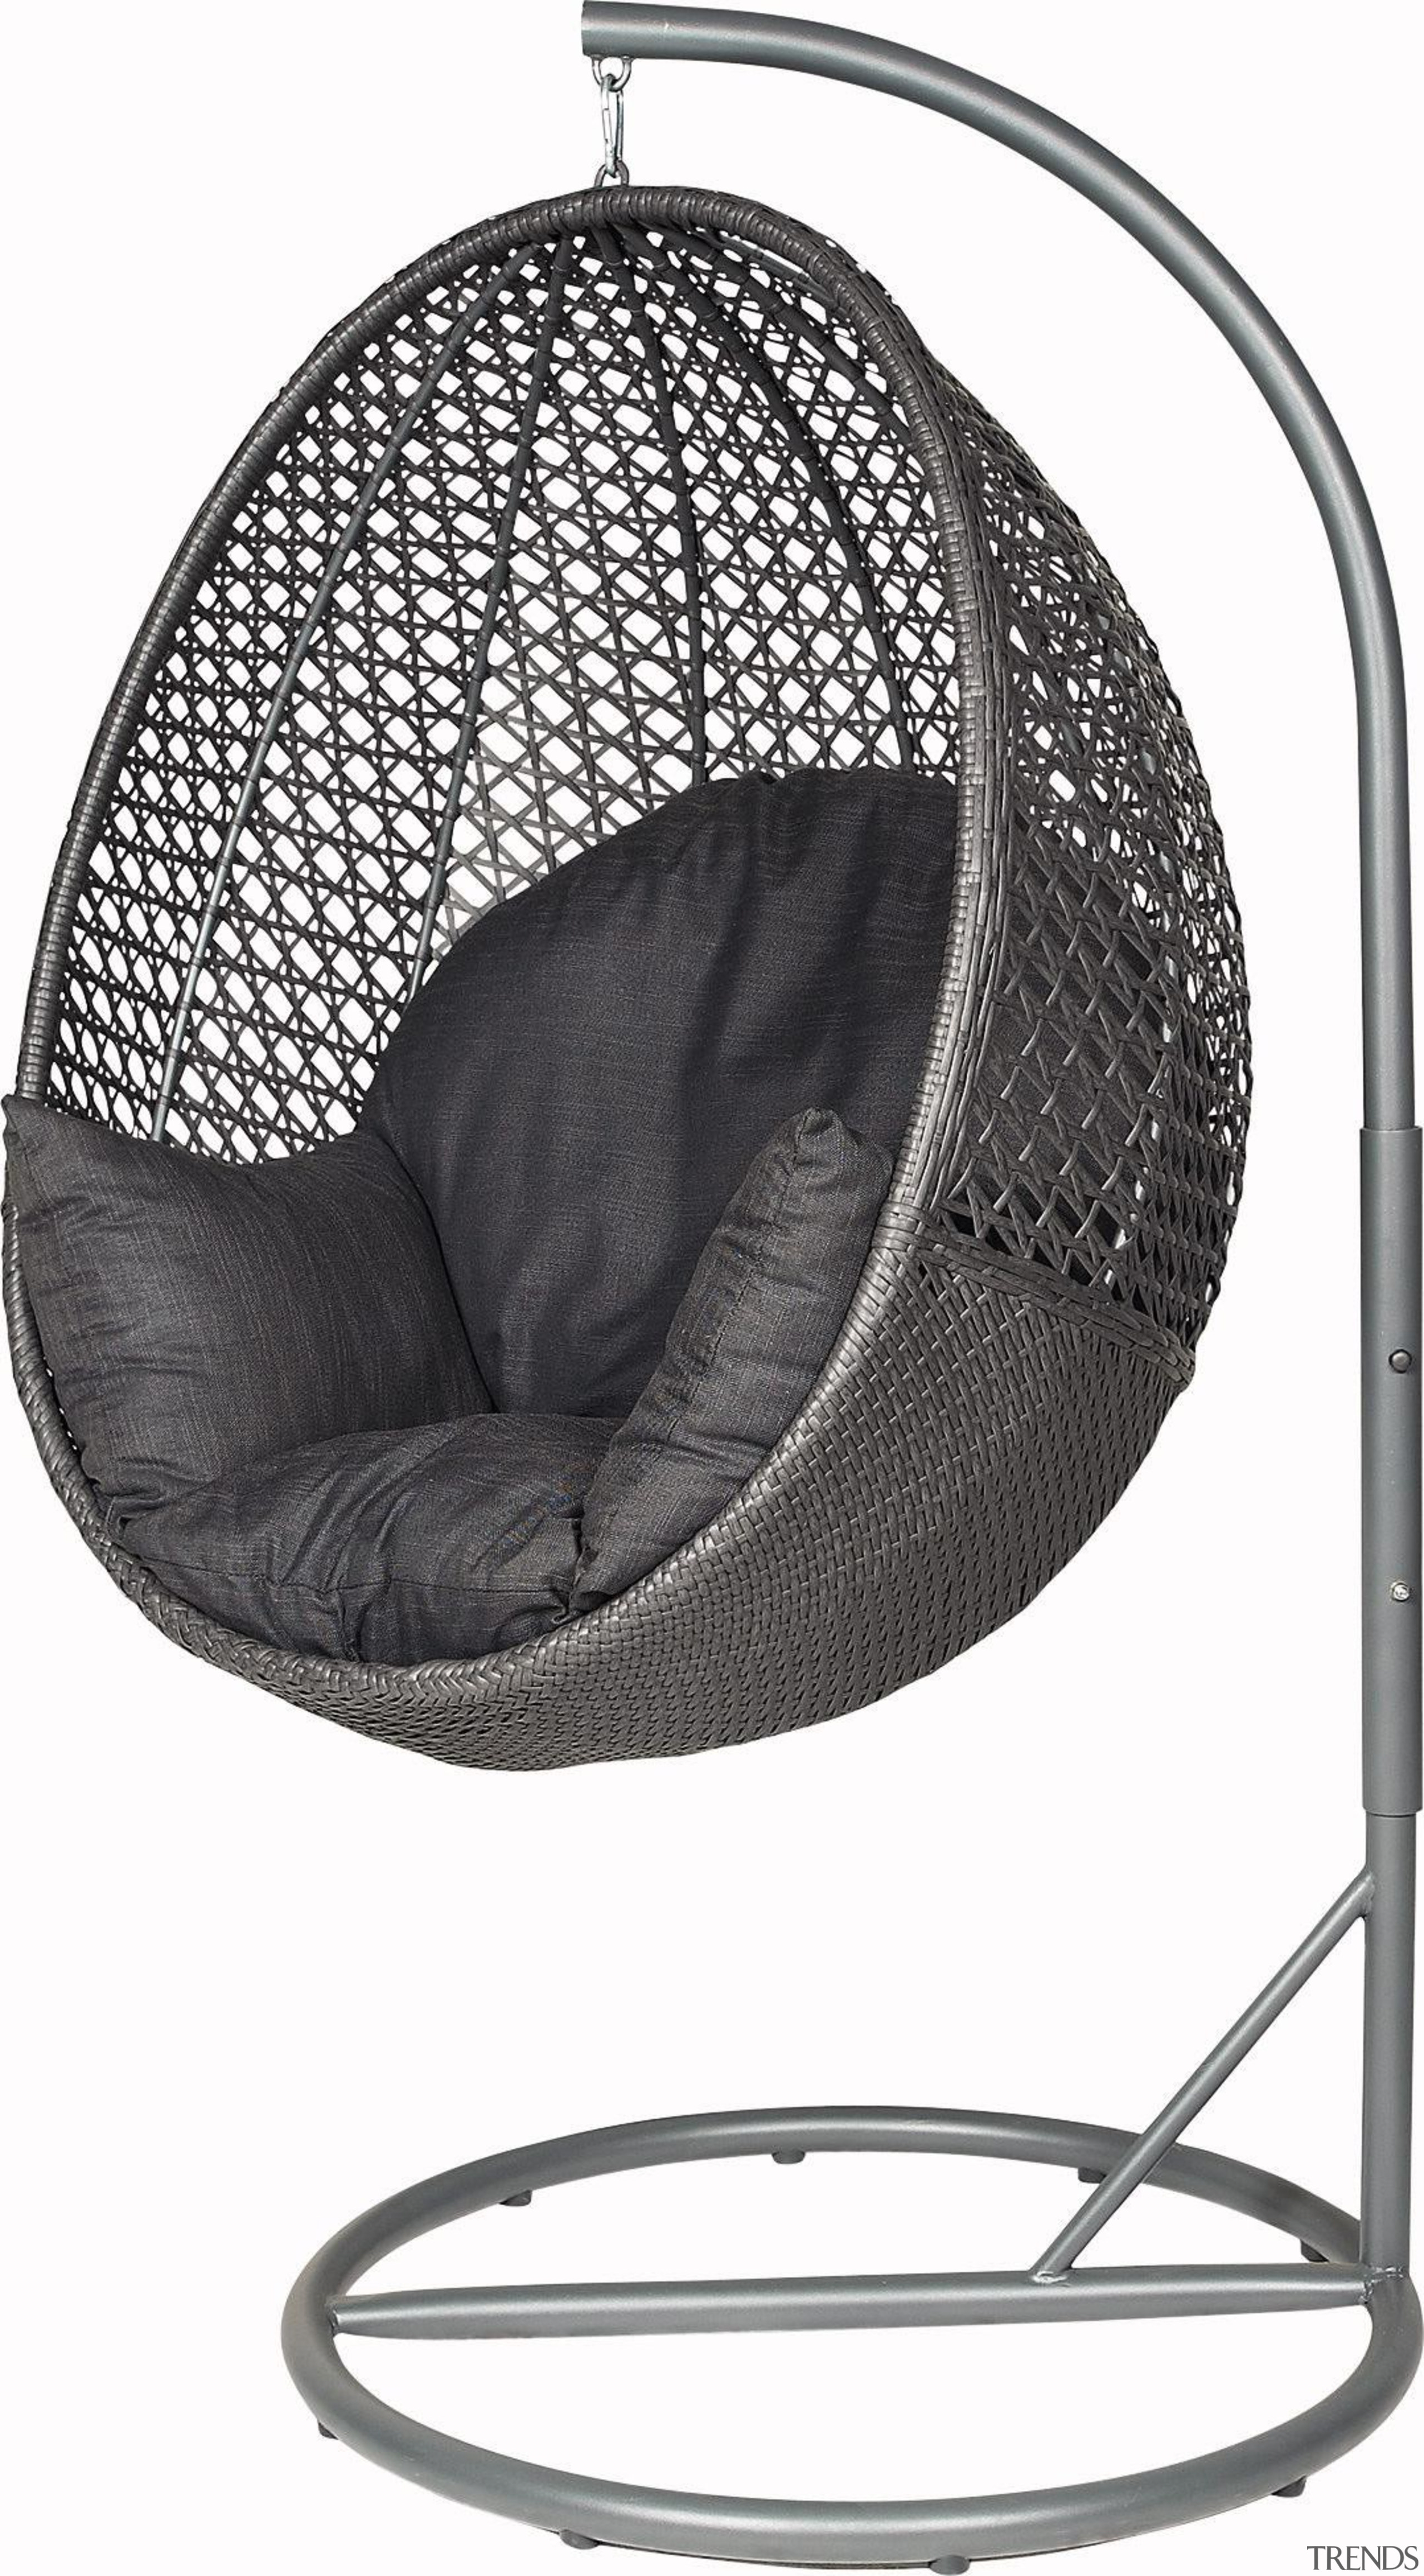 There's nothing quite like a Kiwi summer – chair, headgear, mesh, net, product, product design, white, black